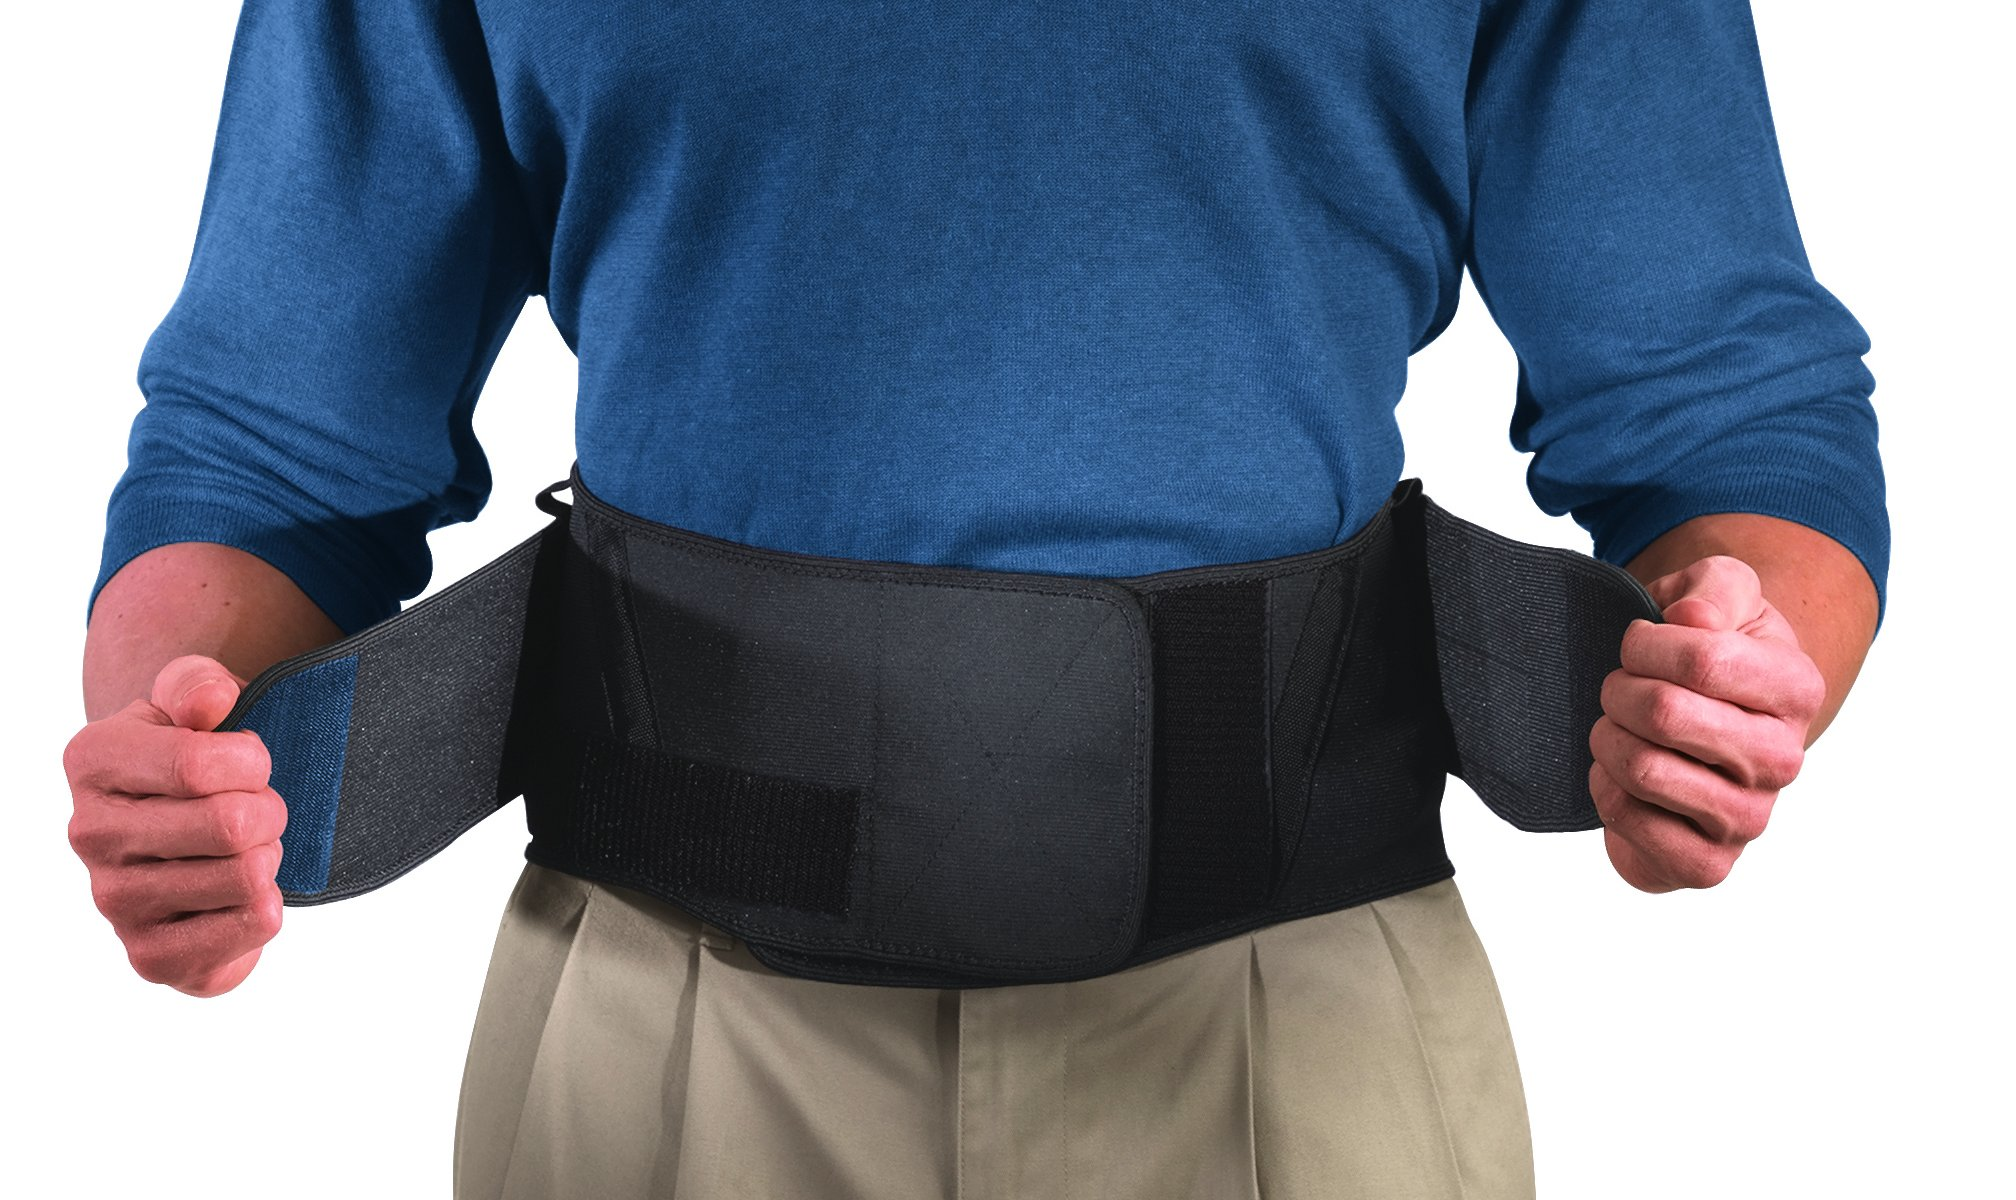 Mueller Adjustable Lumbar Support Back Brace with Removable Pad, Black, Plus Size (50'' - 70'' waist)